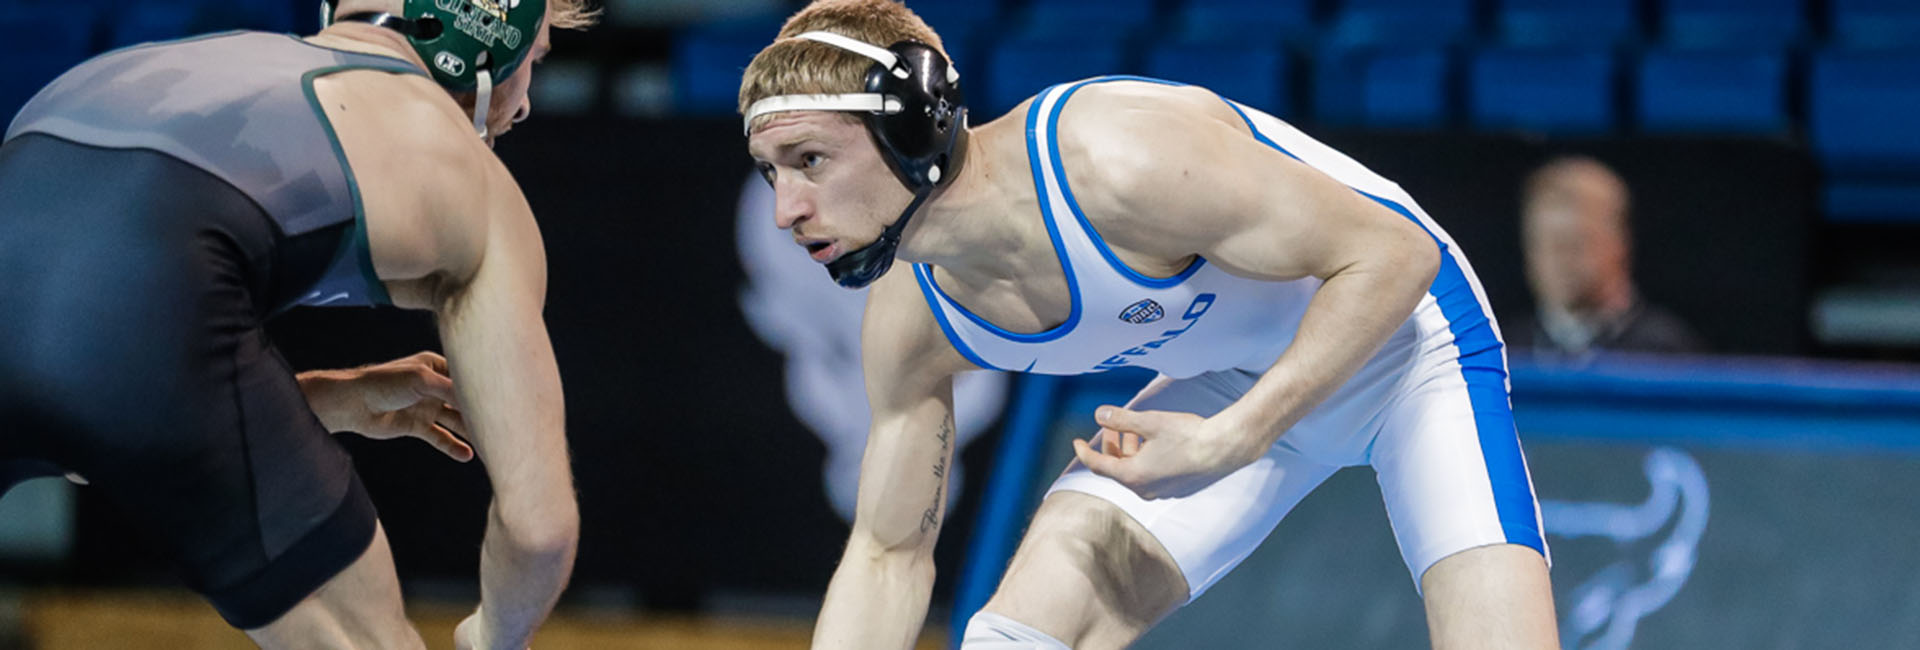 Photo of UB Wrestling athlete Derek Spann